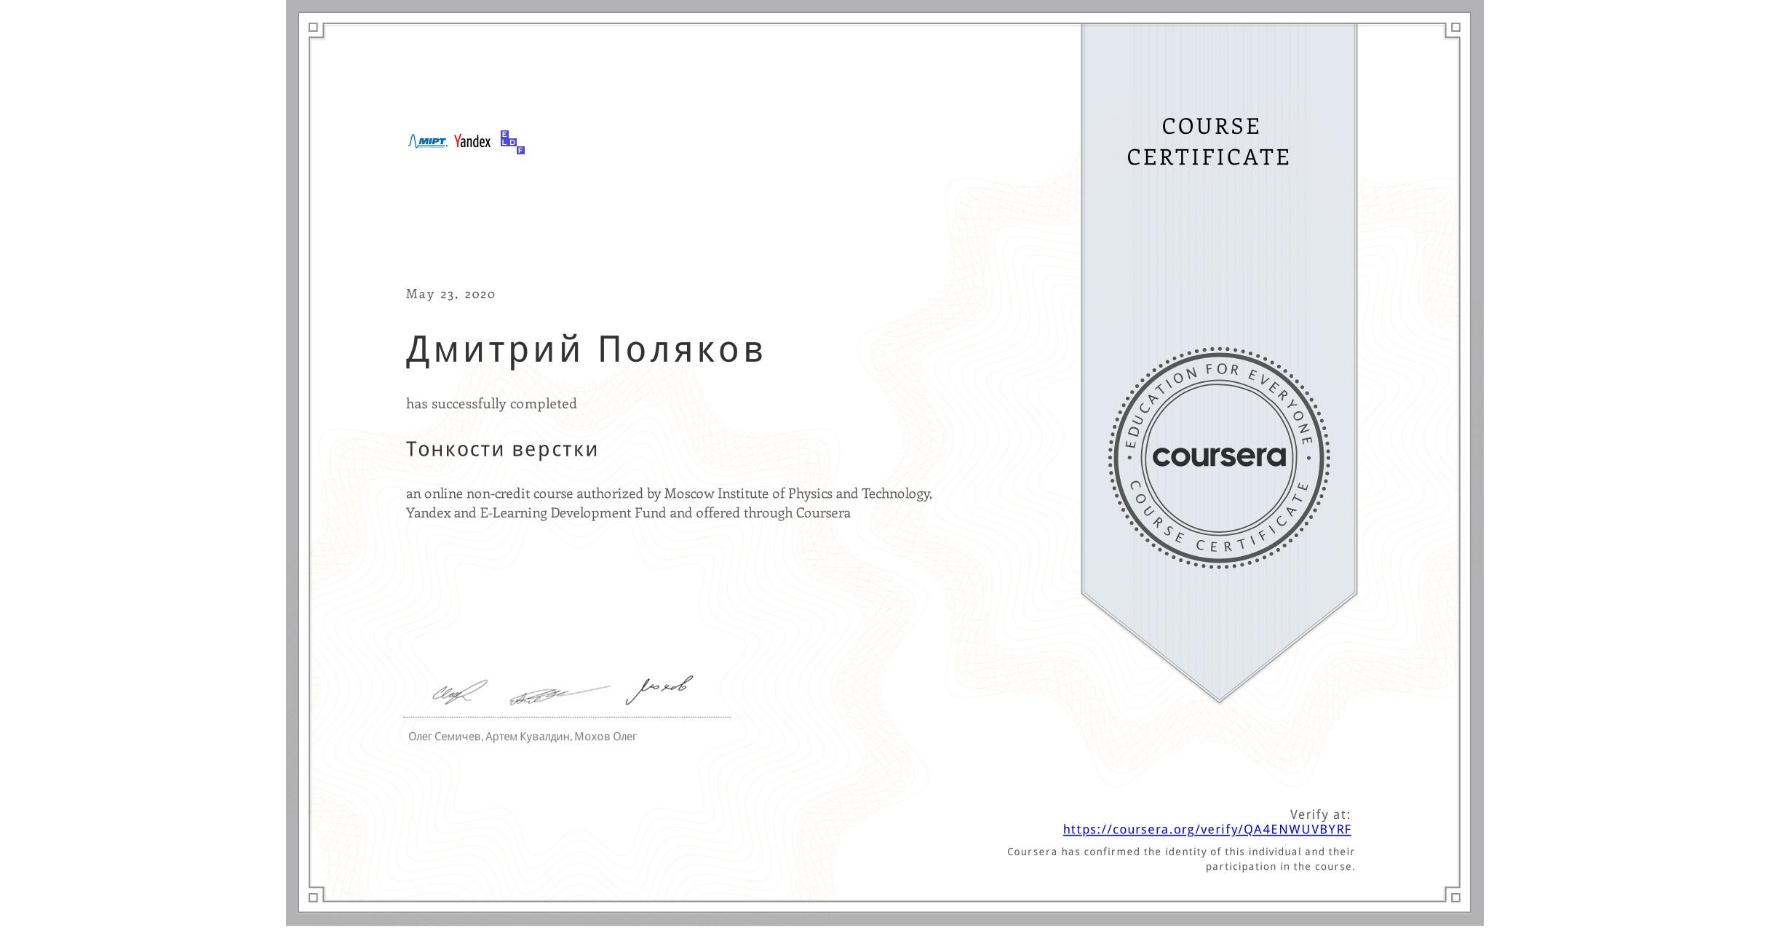 View certificate for Дмитрий Поляков, Тонкости верстки, an online non-credit course authorized by Moscow Institute of Physics and Technology, Yandex & E-Learning Development Fund and offered through Coursera